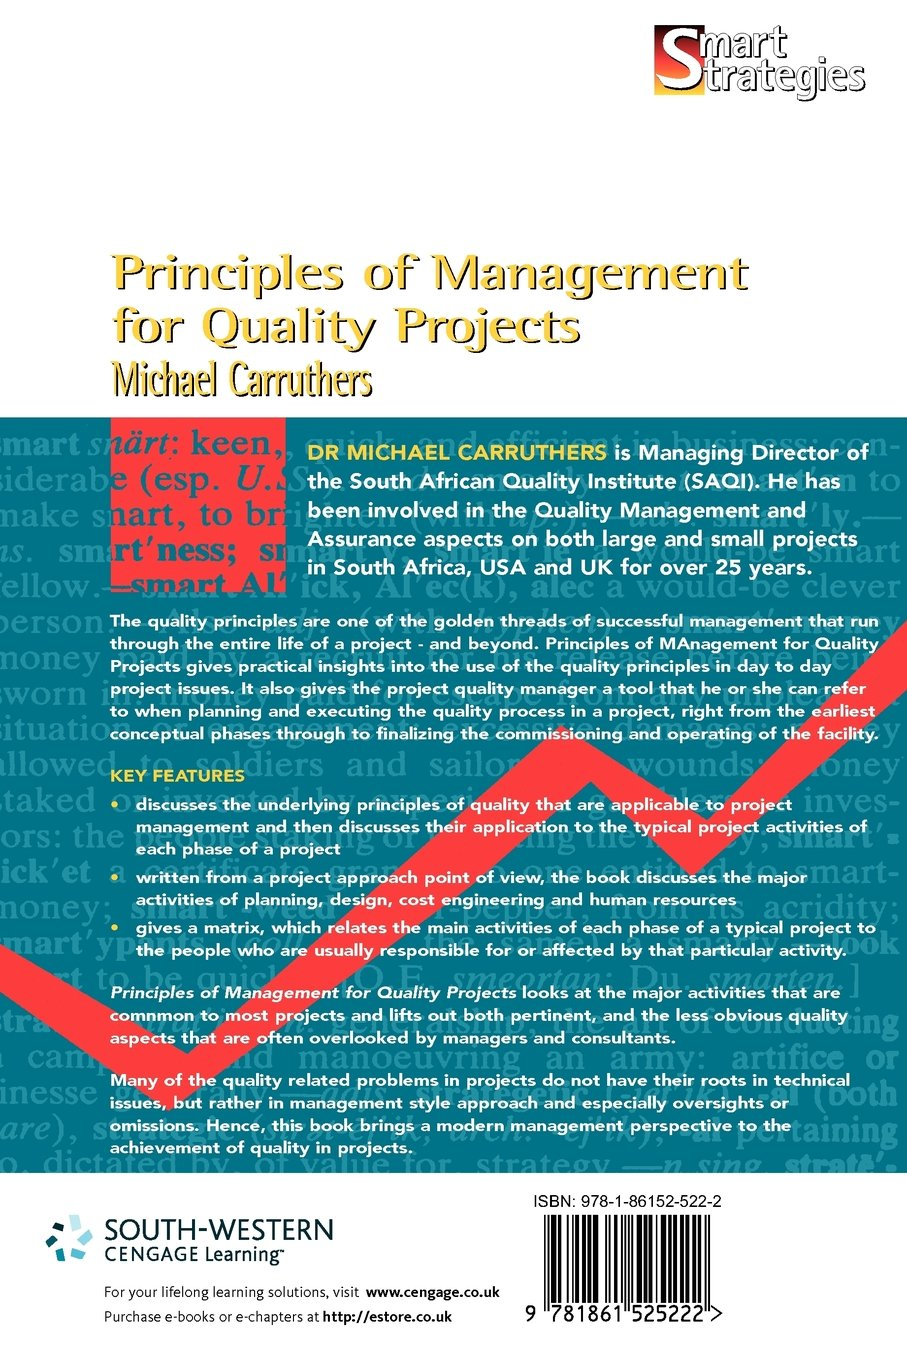 Principles of management for quality projects smart strategies principles of management for quality projects smart strategies michael c carruthers 9781861525222 amazon books fandeluxe Choice Image